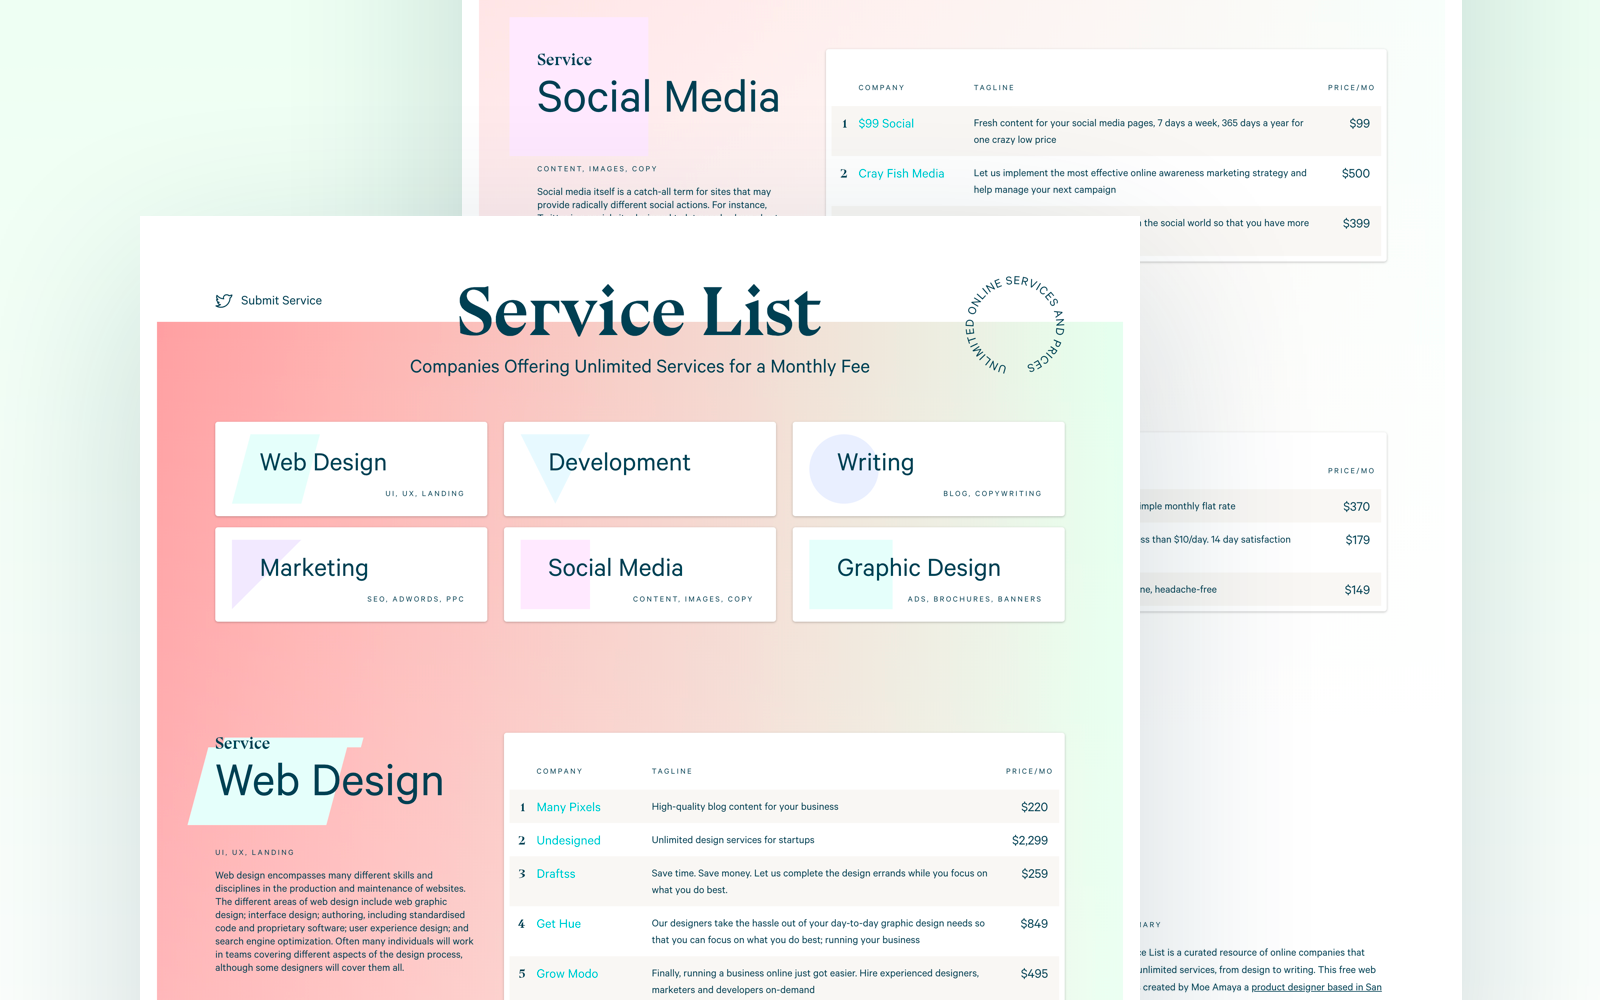 Service List is a curated resource of online companies that offer